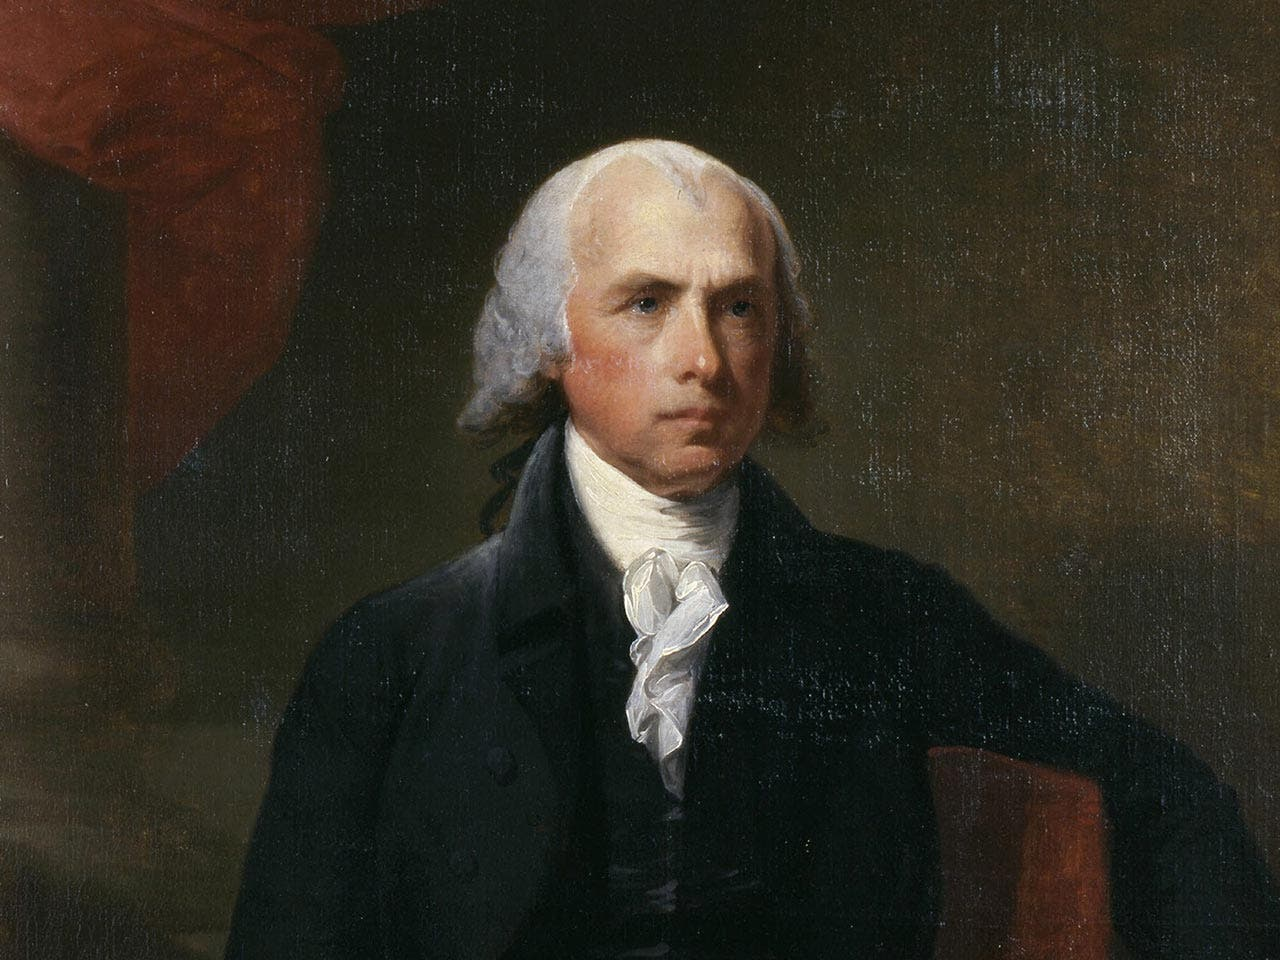 James Madison | Universal History Archive/Getty Images